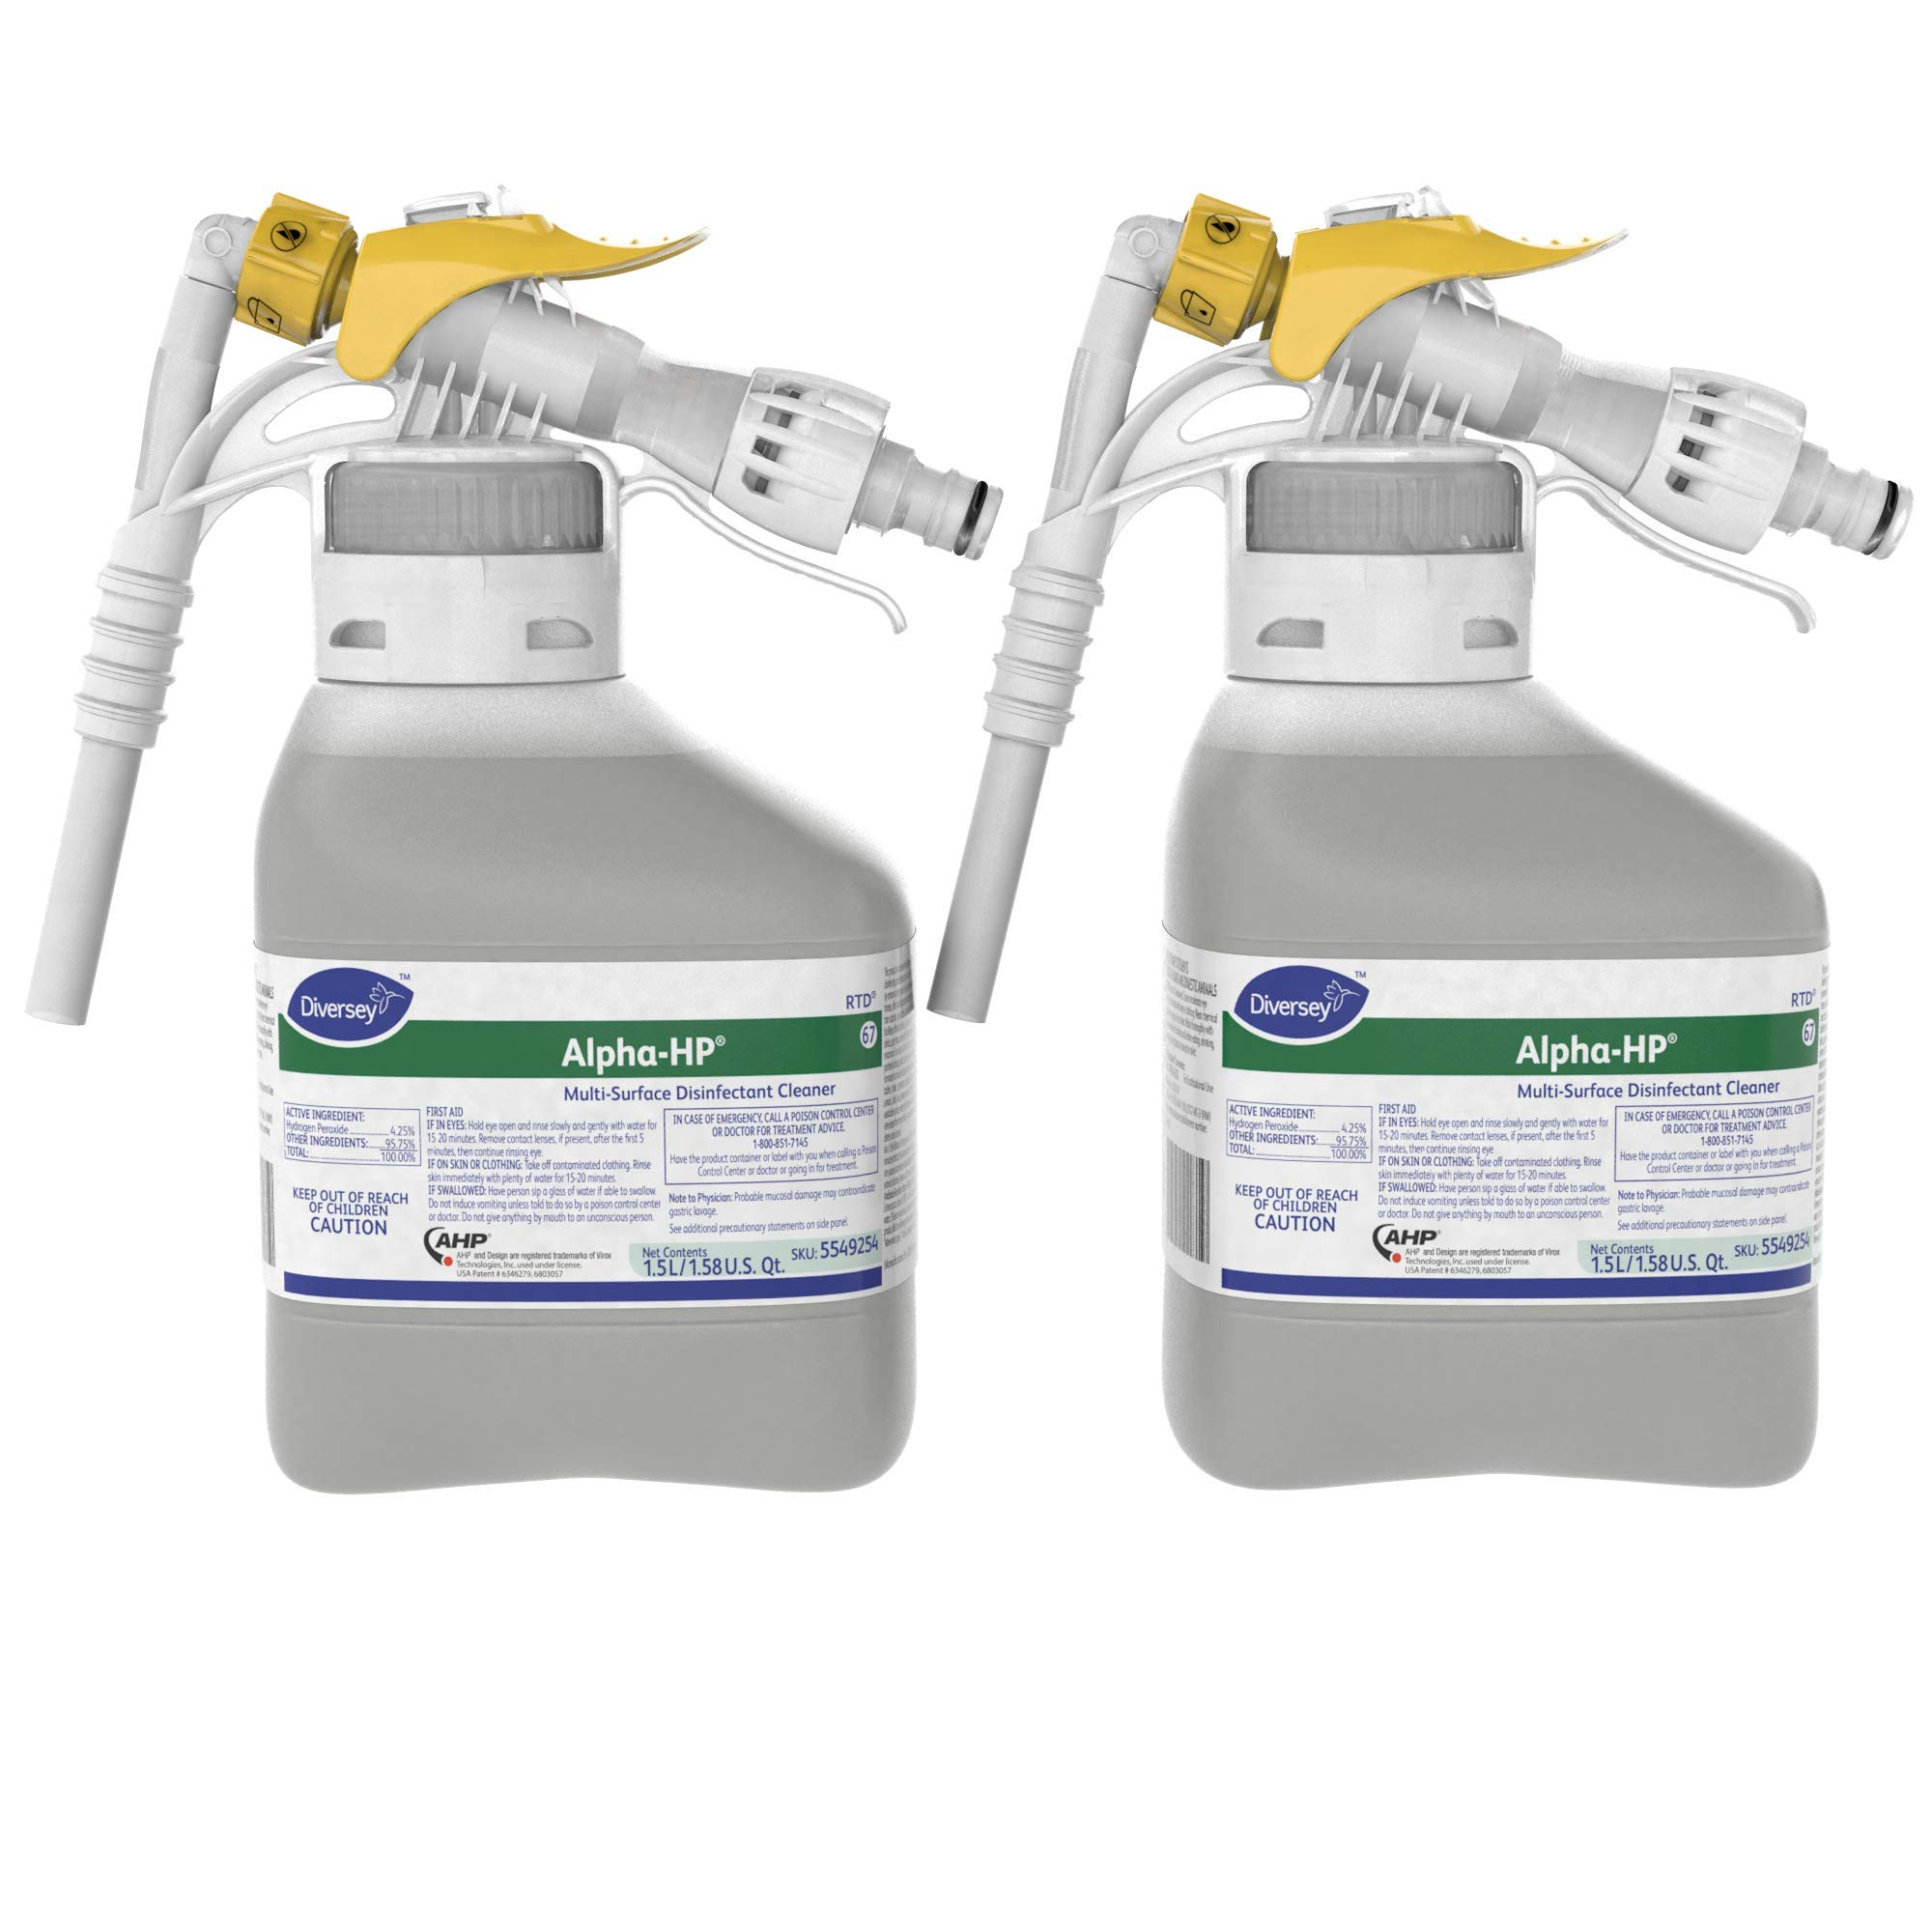 Diversey Alpha-HP Multi-Surface Disinfectant Cleaner (50.7-Ounce, 2-Pack)